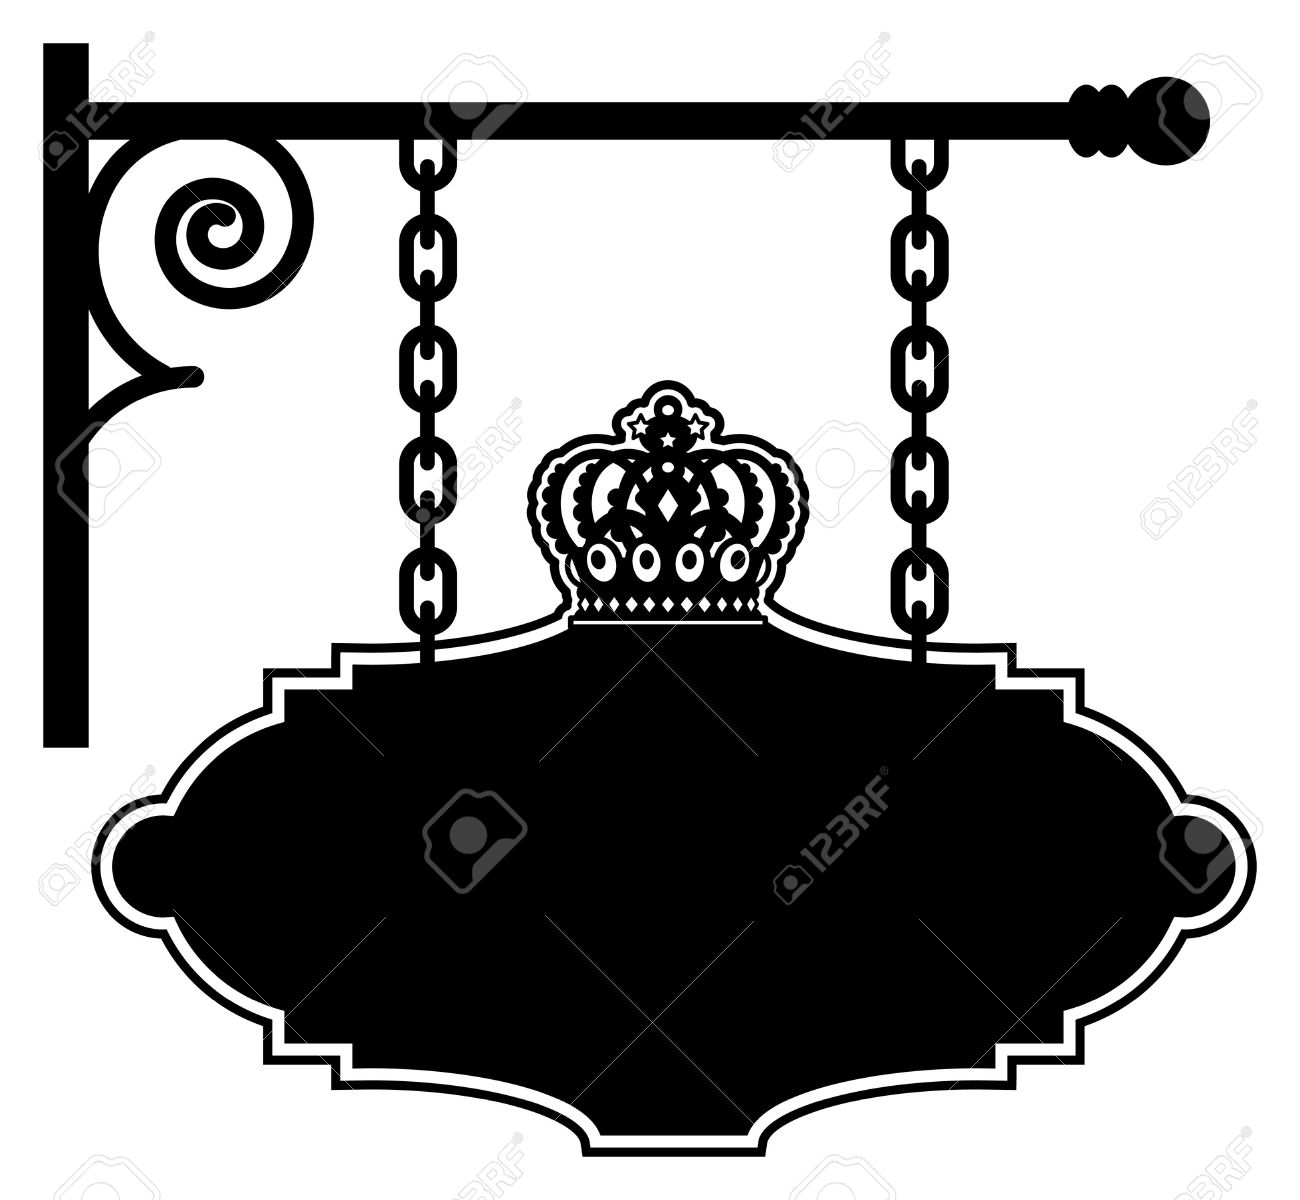 Blank Restaurant Or Hotel Sign Royalty Free Cliparts Vectors And